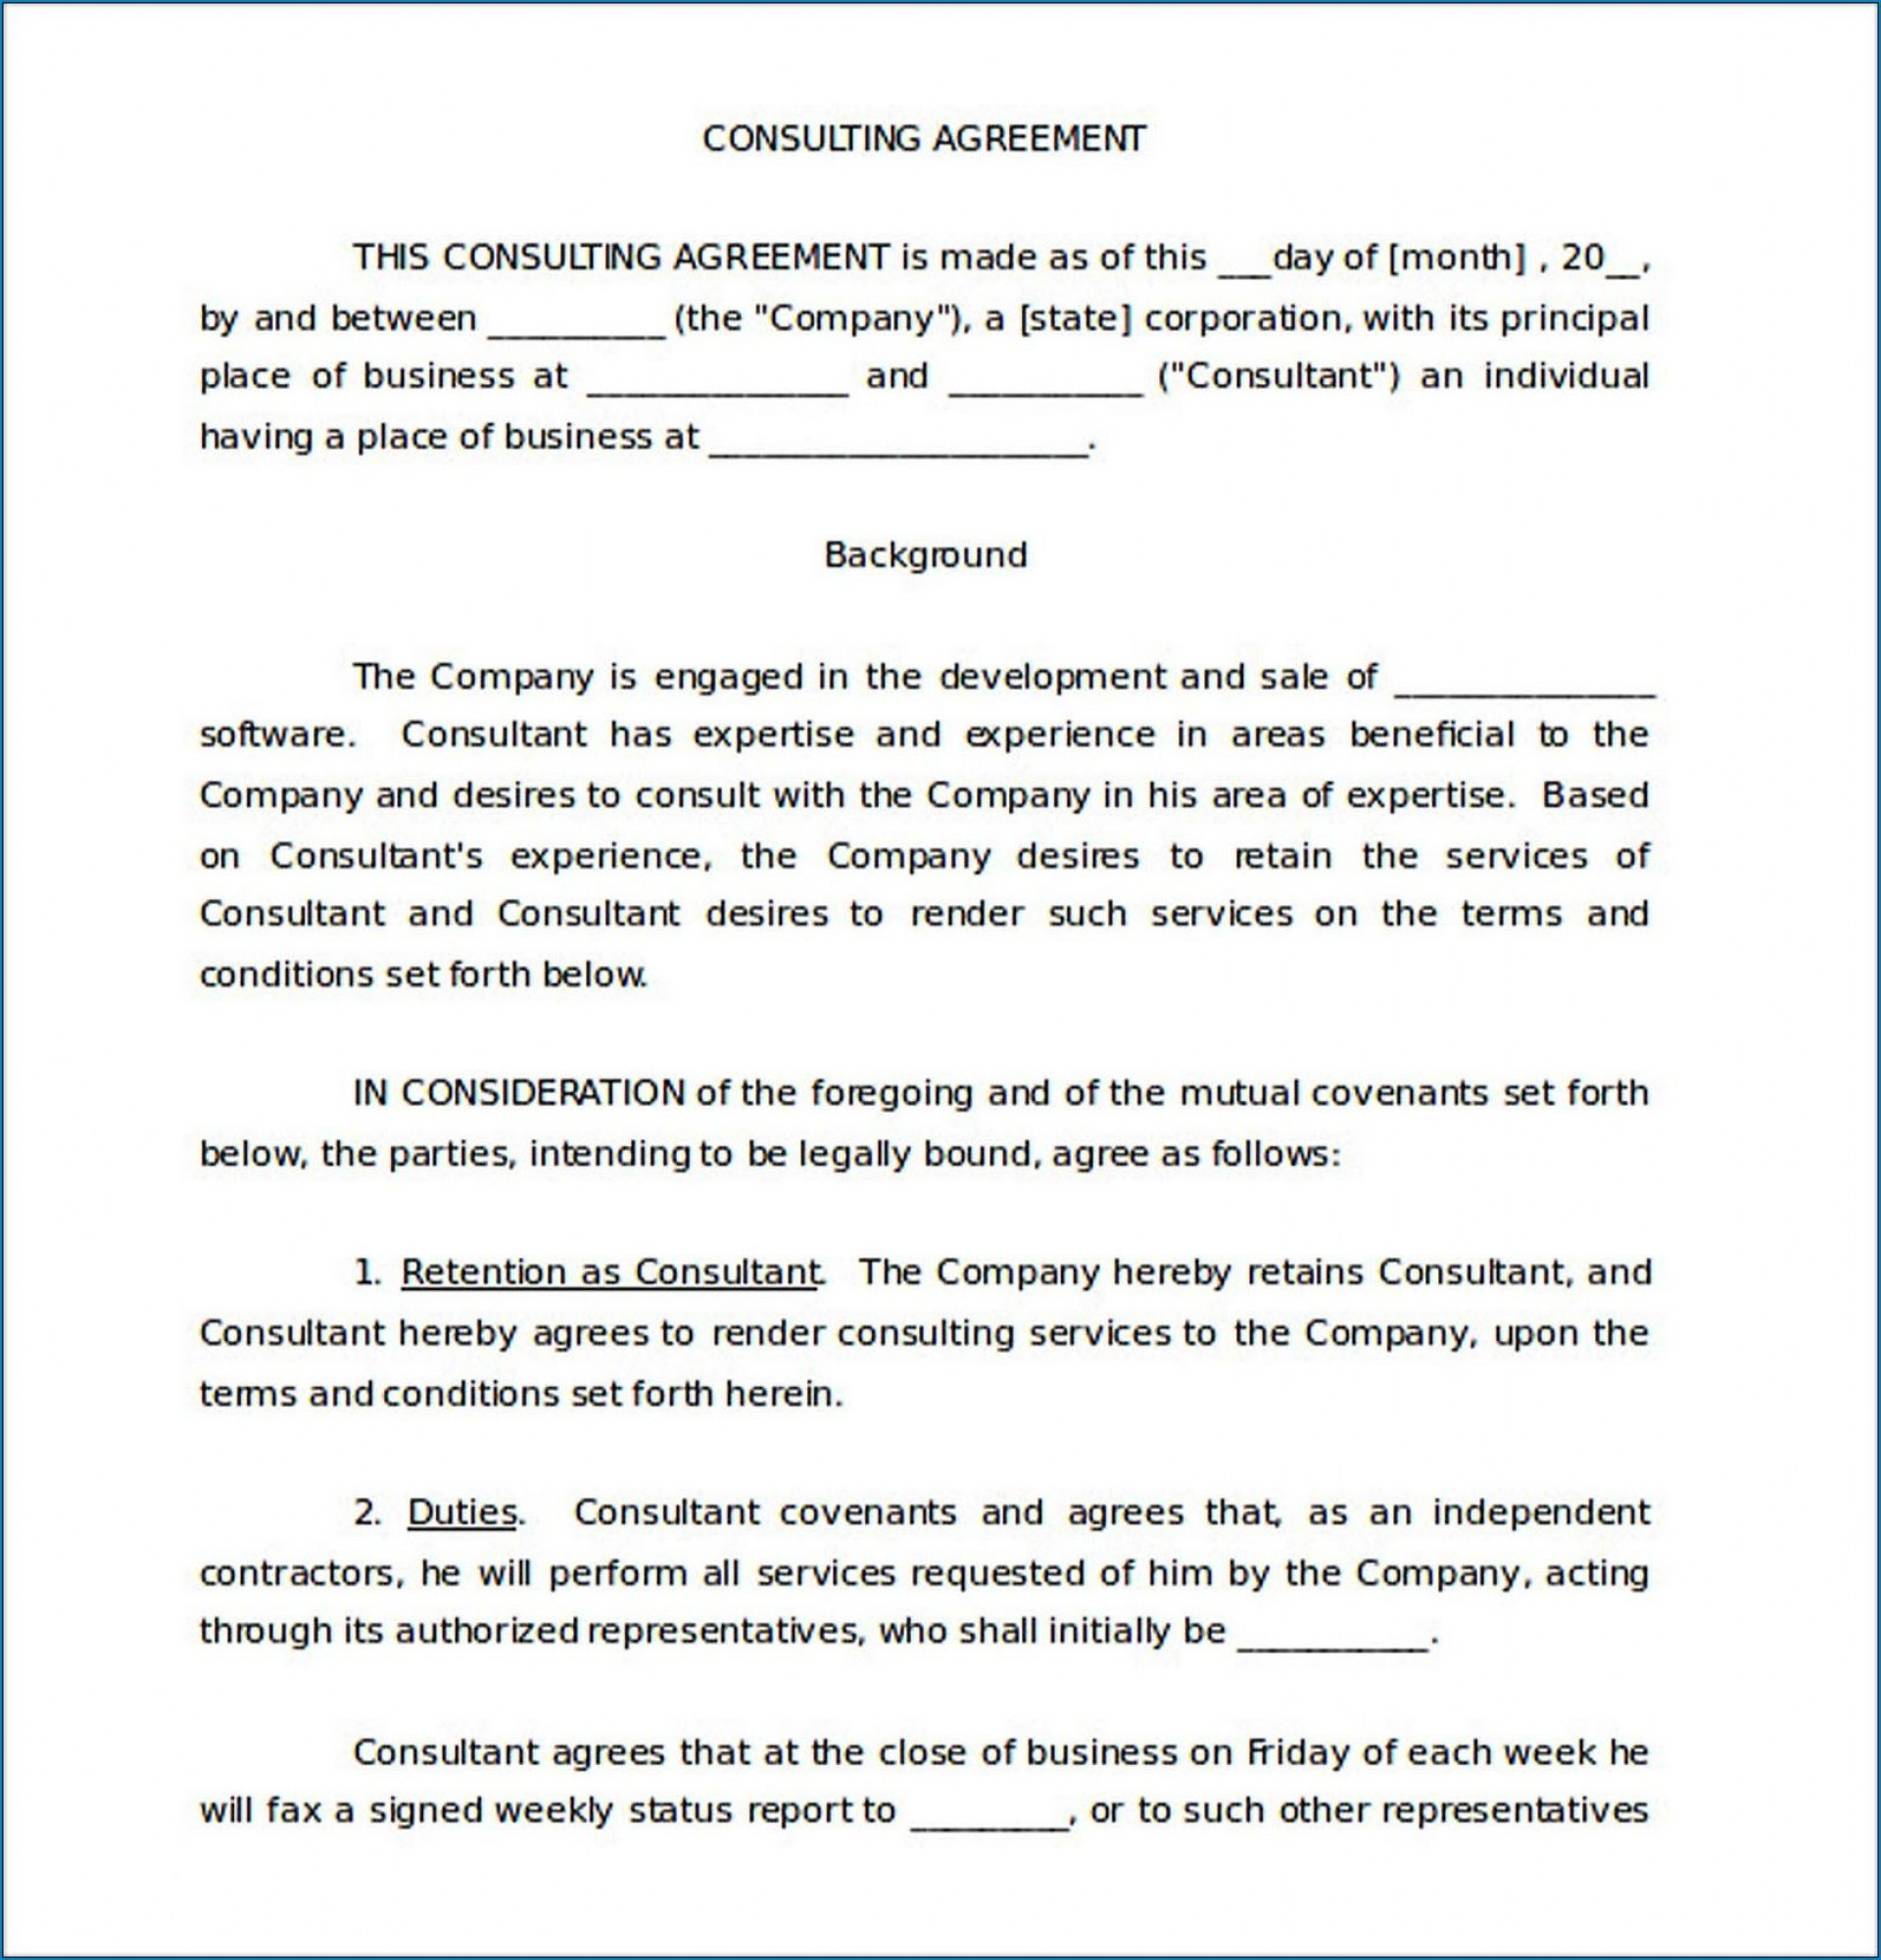 005 Impressive Simple Consulting Agreement Template Inspiration  Free Uk Pdf1920